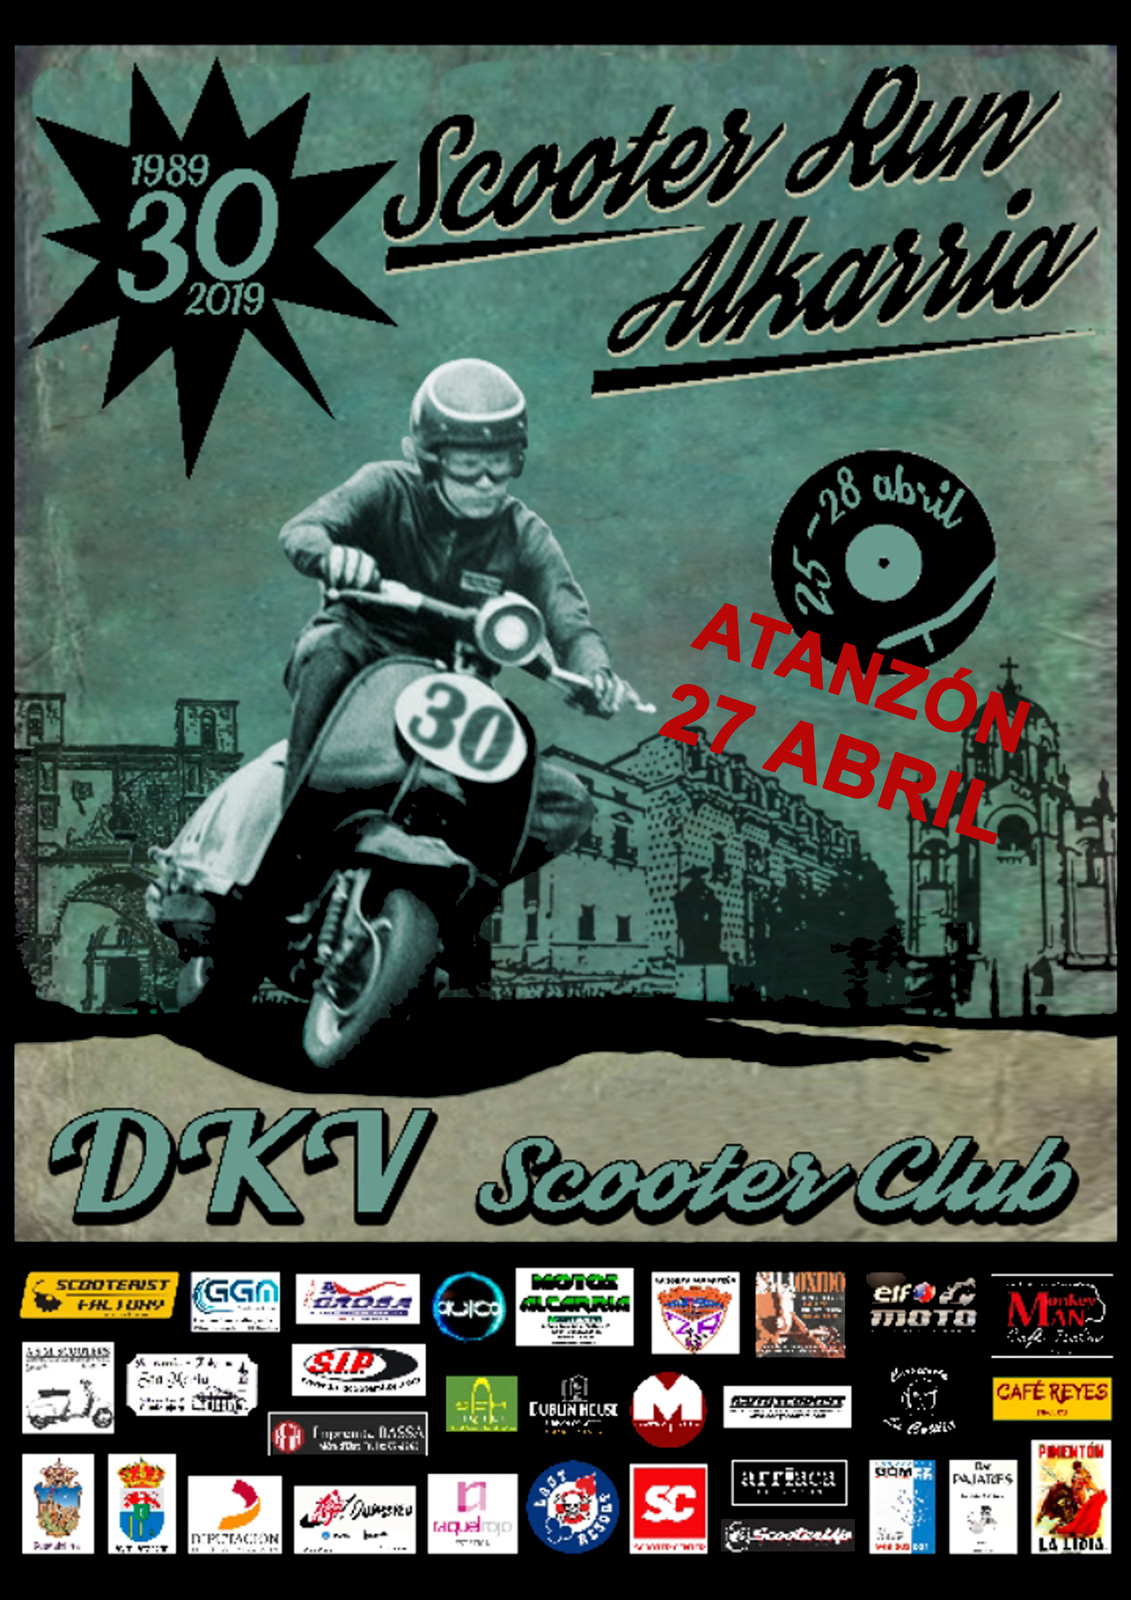 Scooter Run Alcarria 2019